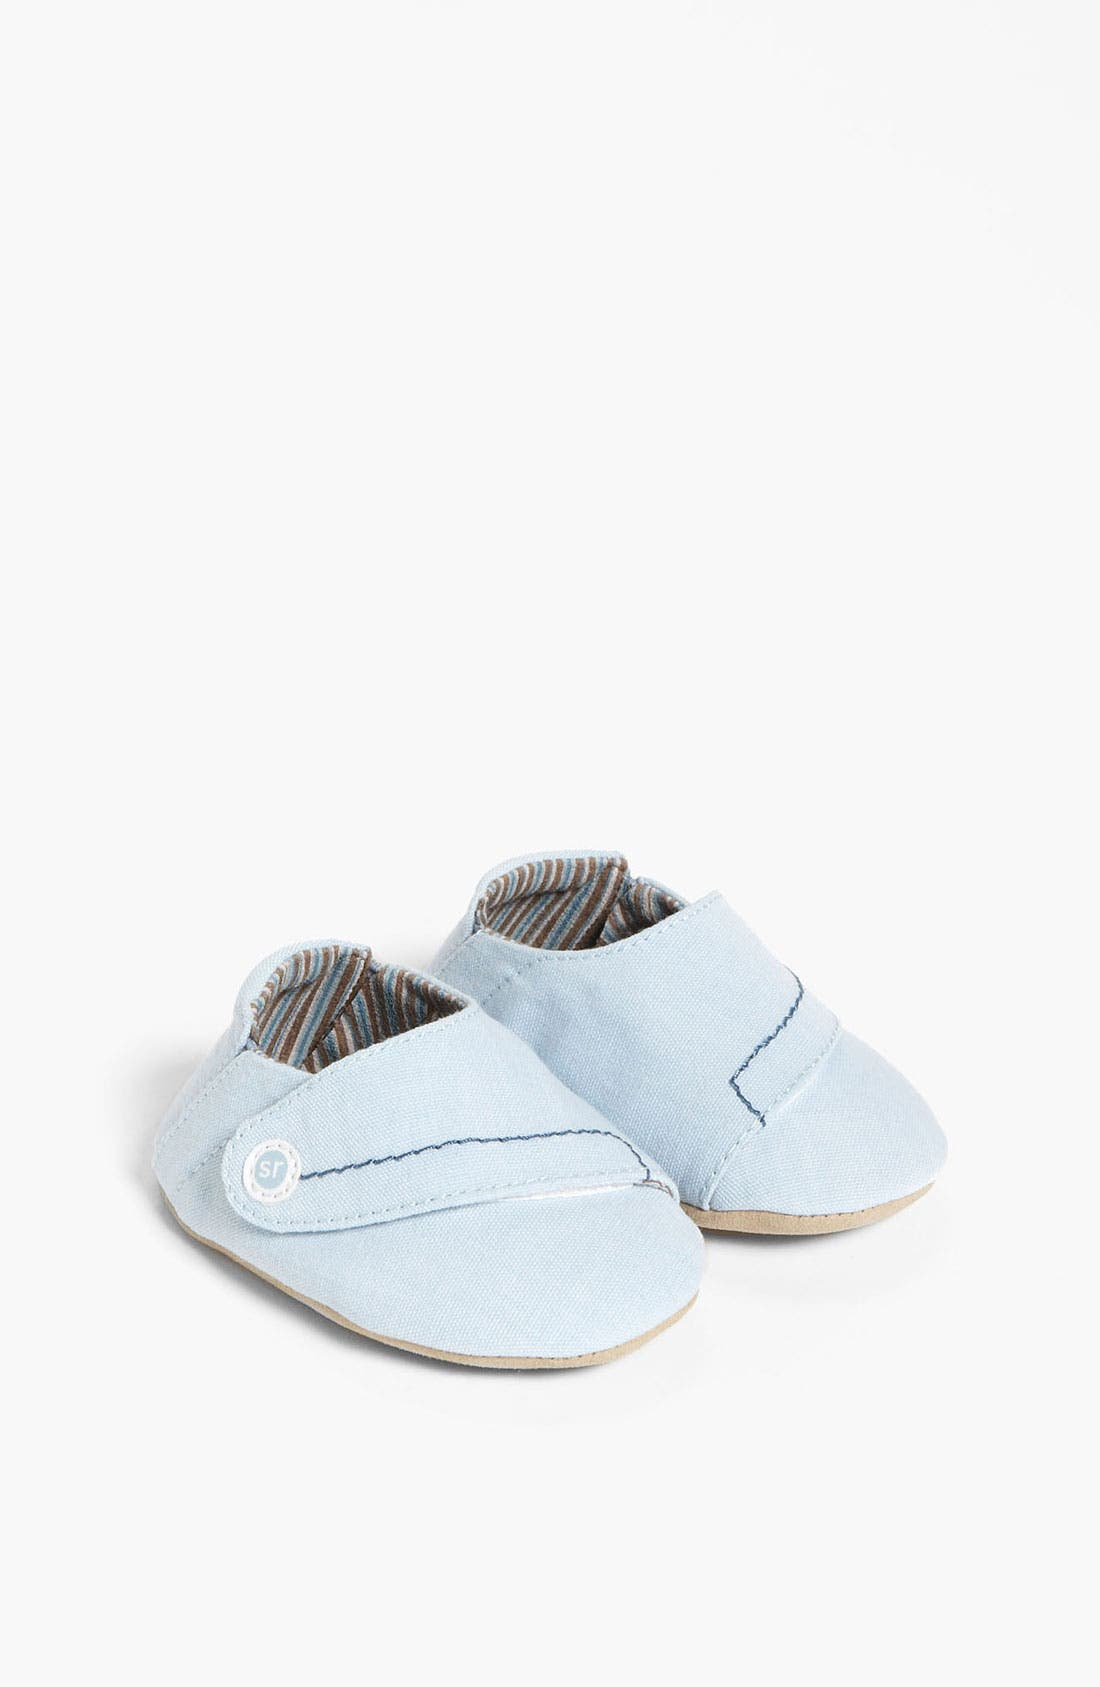 Main Image - Stride Rite 'Blue Dream' Crib Shoe (Baby)